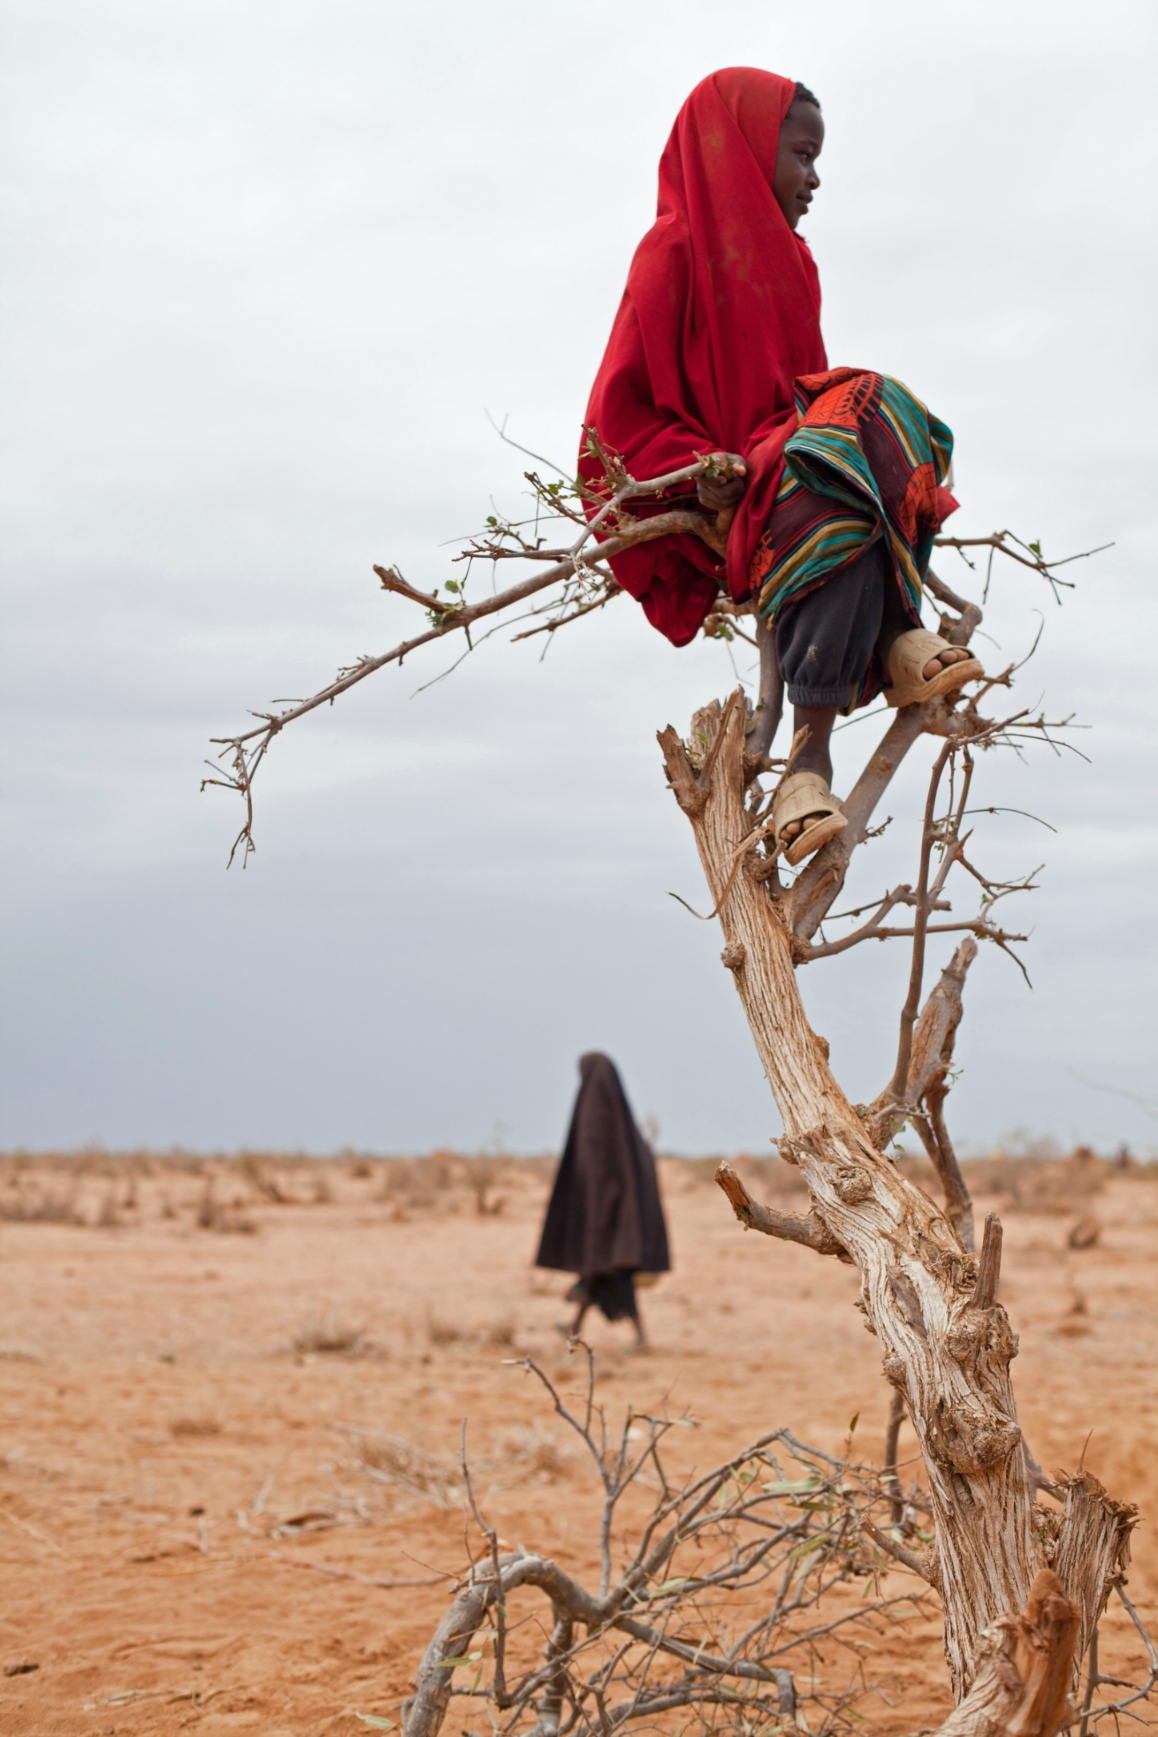 A Somali refugee girl sits perched on a tree in Ifo camp. Image:brendanbannon.com